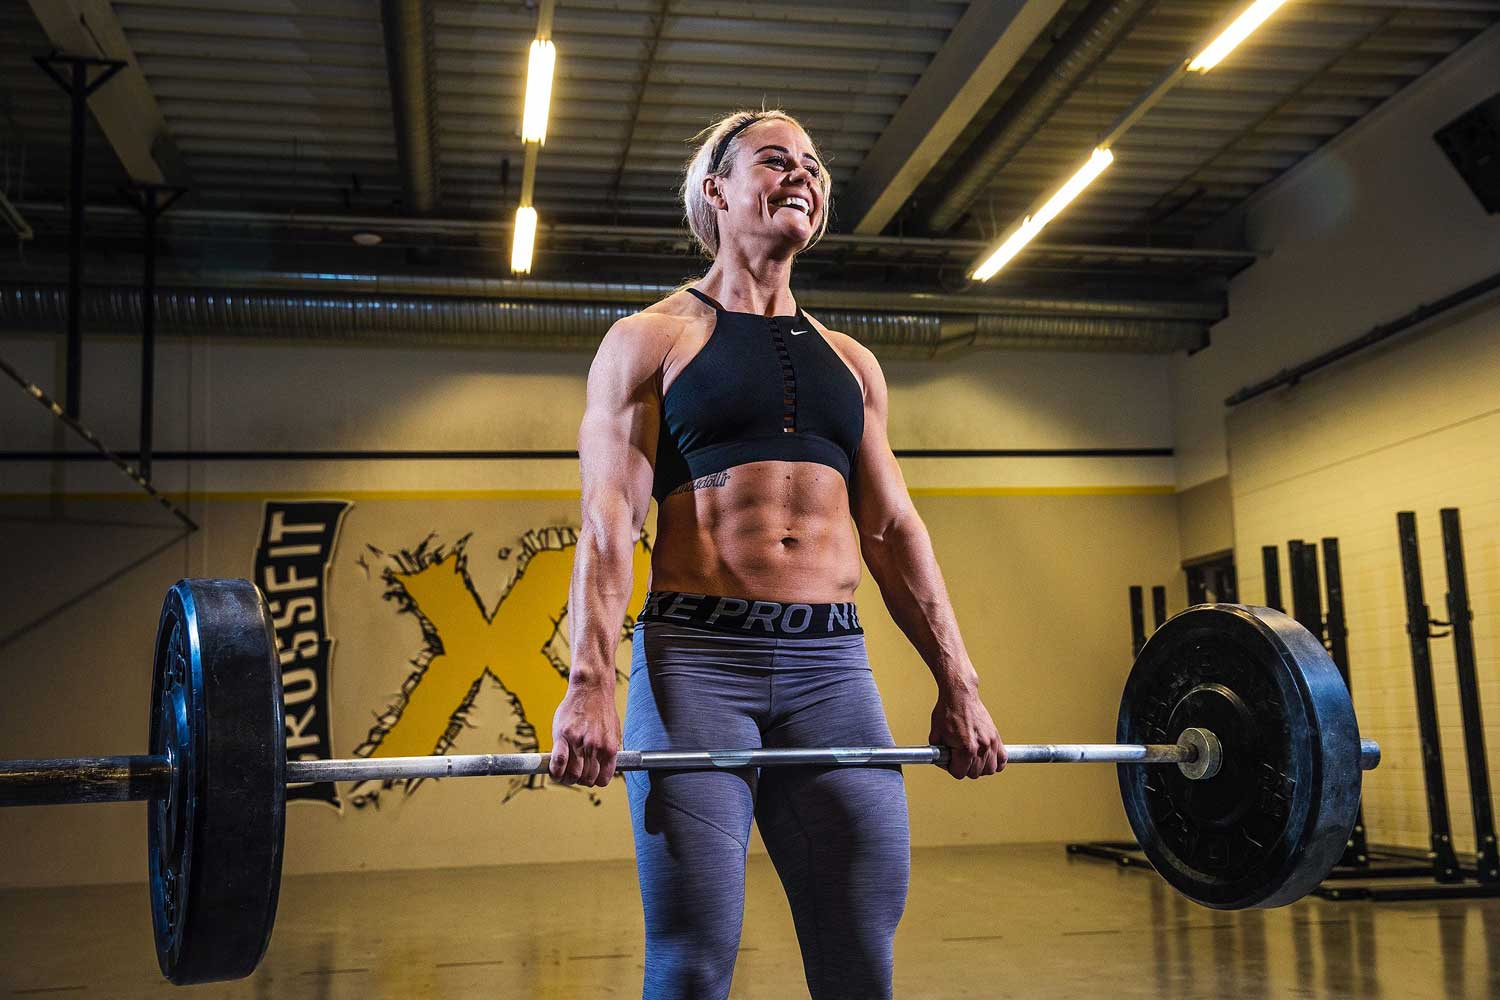 20.3-crossfit-open-sara-sigmundsdóttirs-best-workout-advice